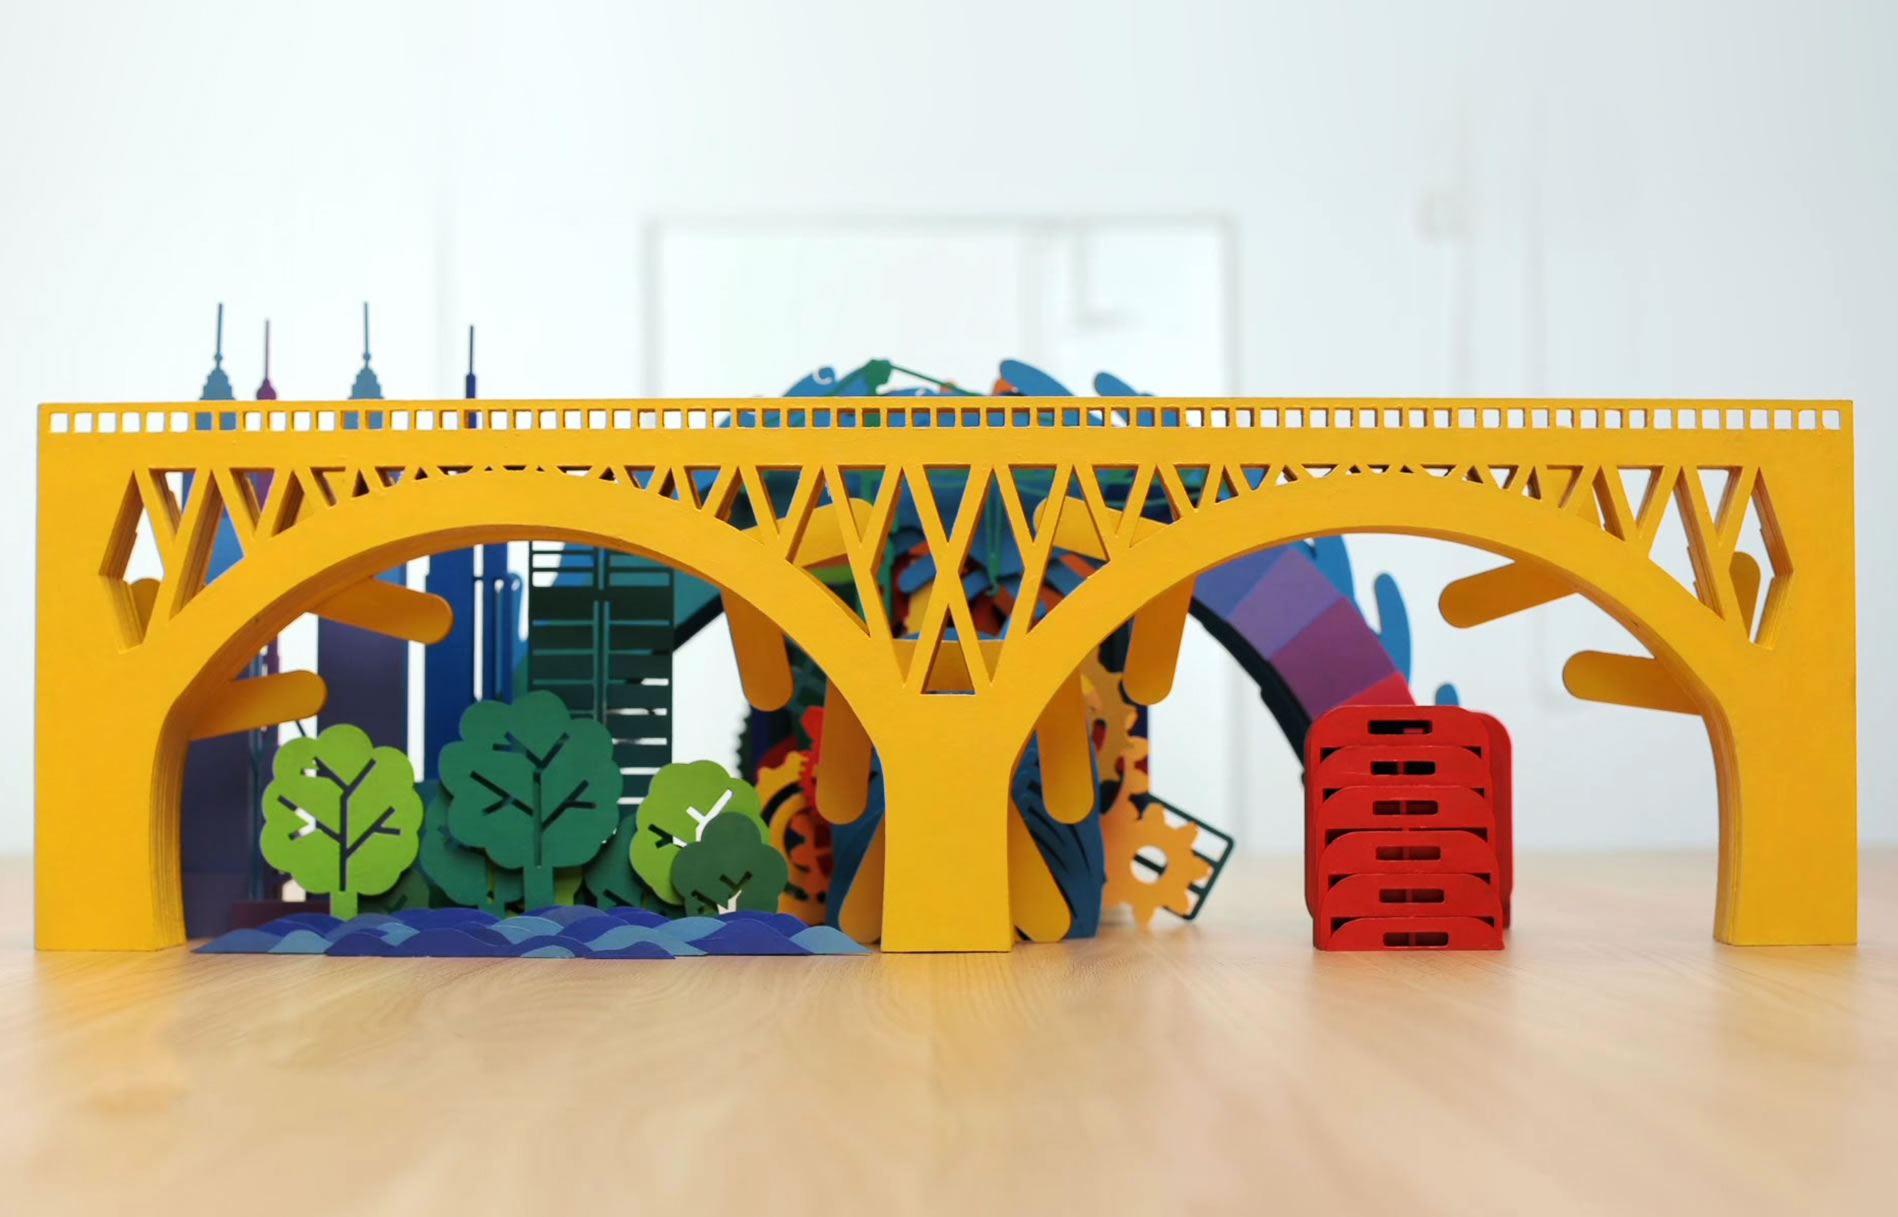 A Colorful Stop-Motion Video for Curtin University